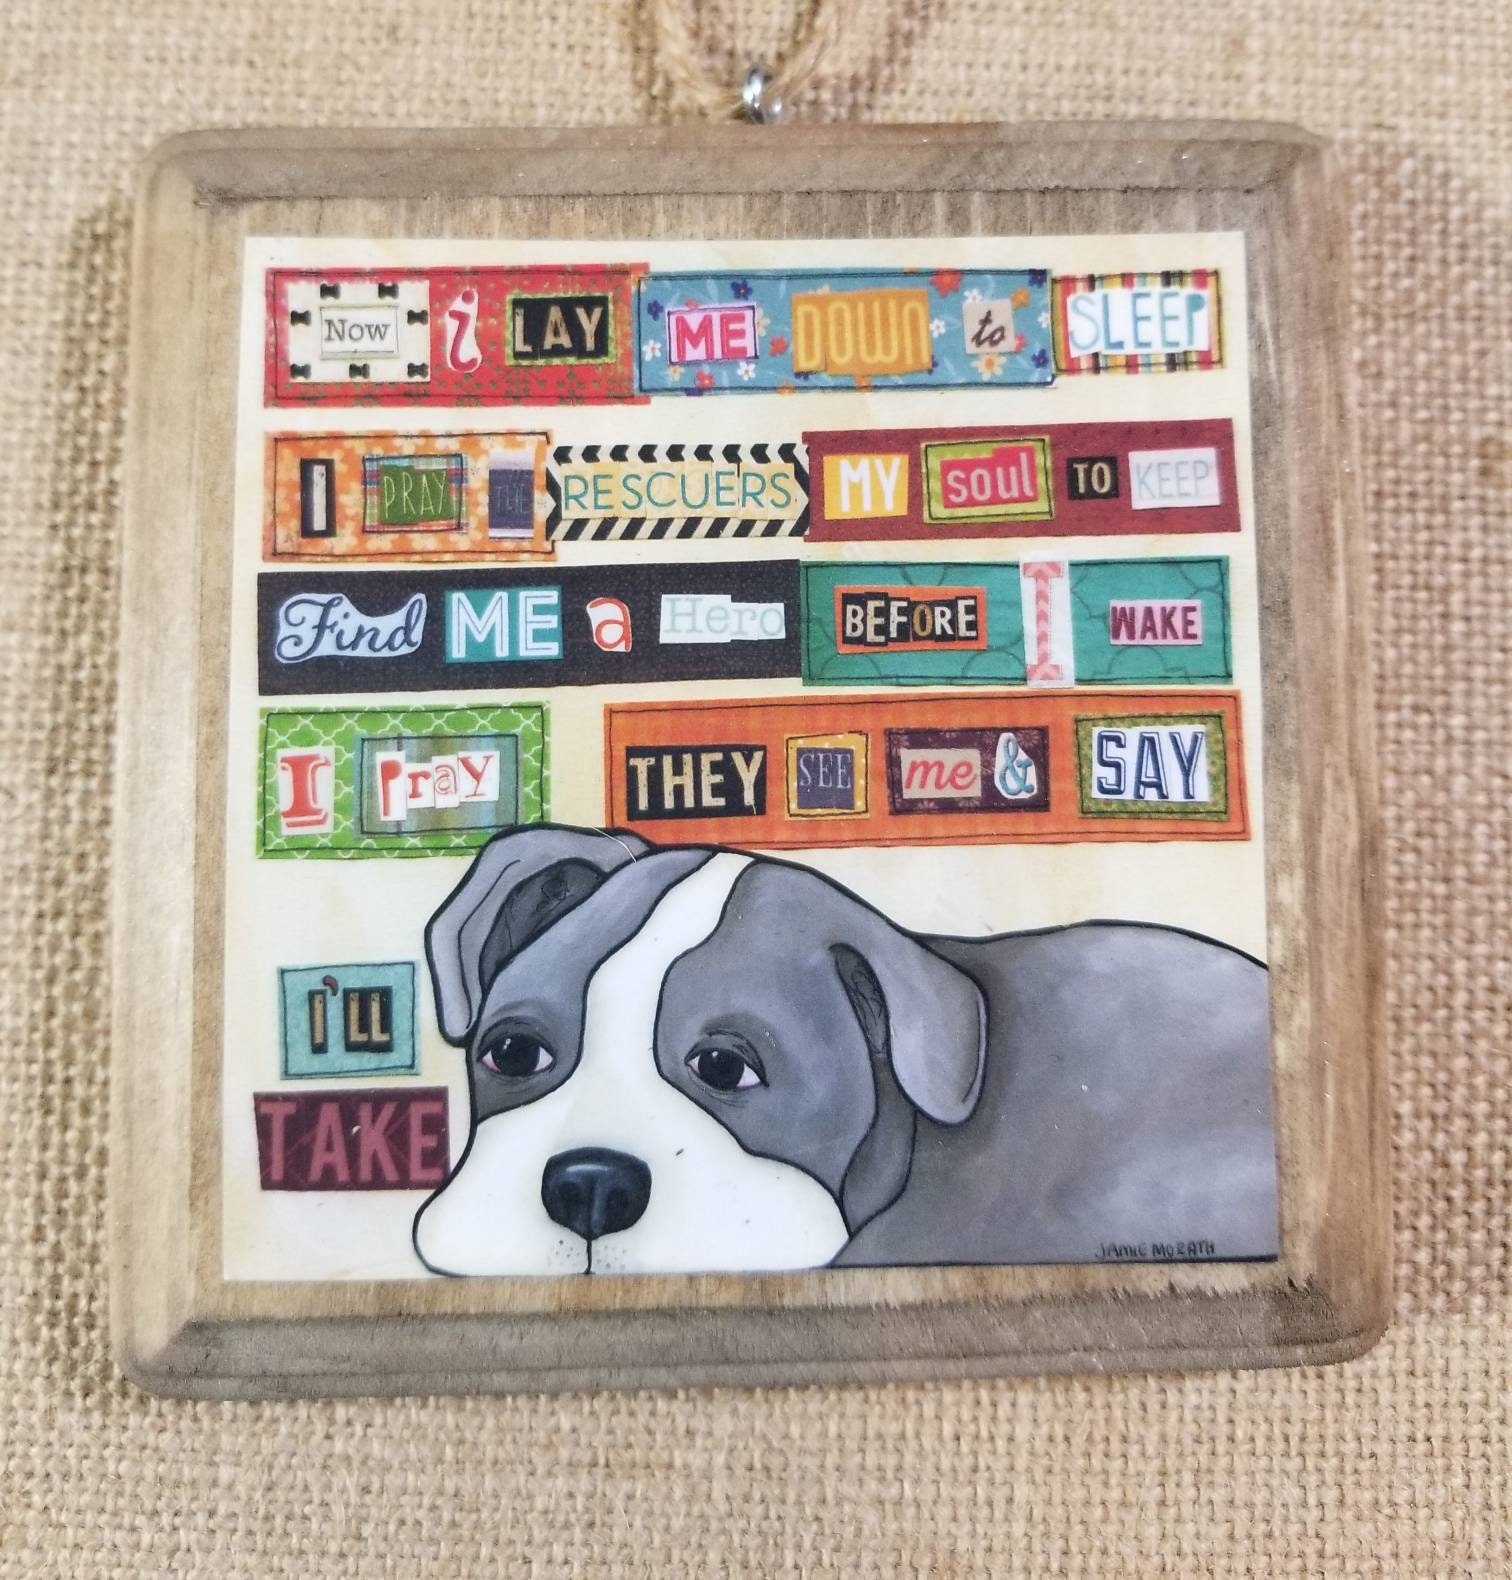 I\'ll Take, pit bull dog art, rescue dog, fostering, rescue ...